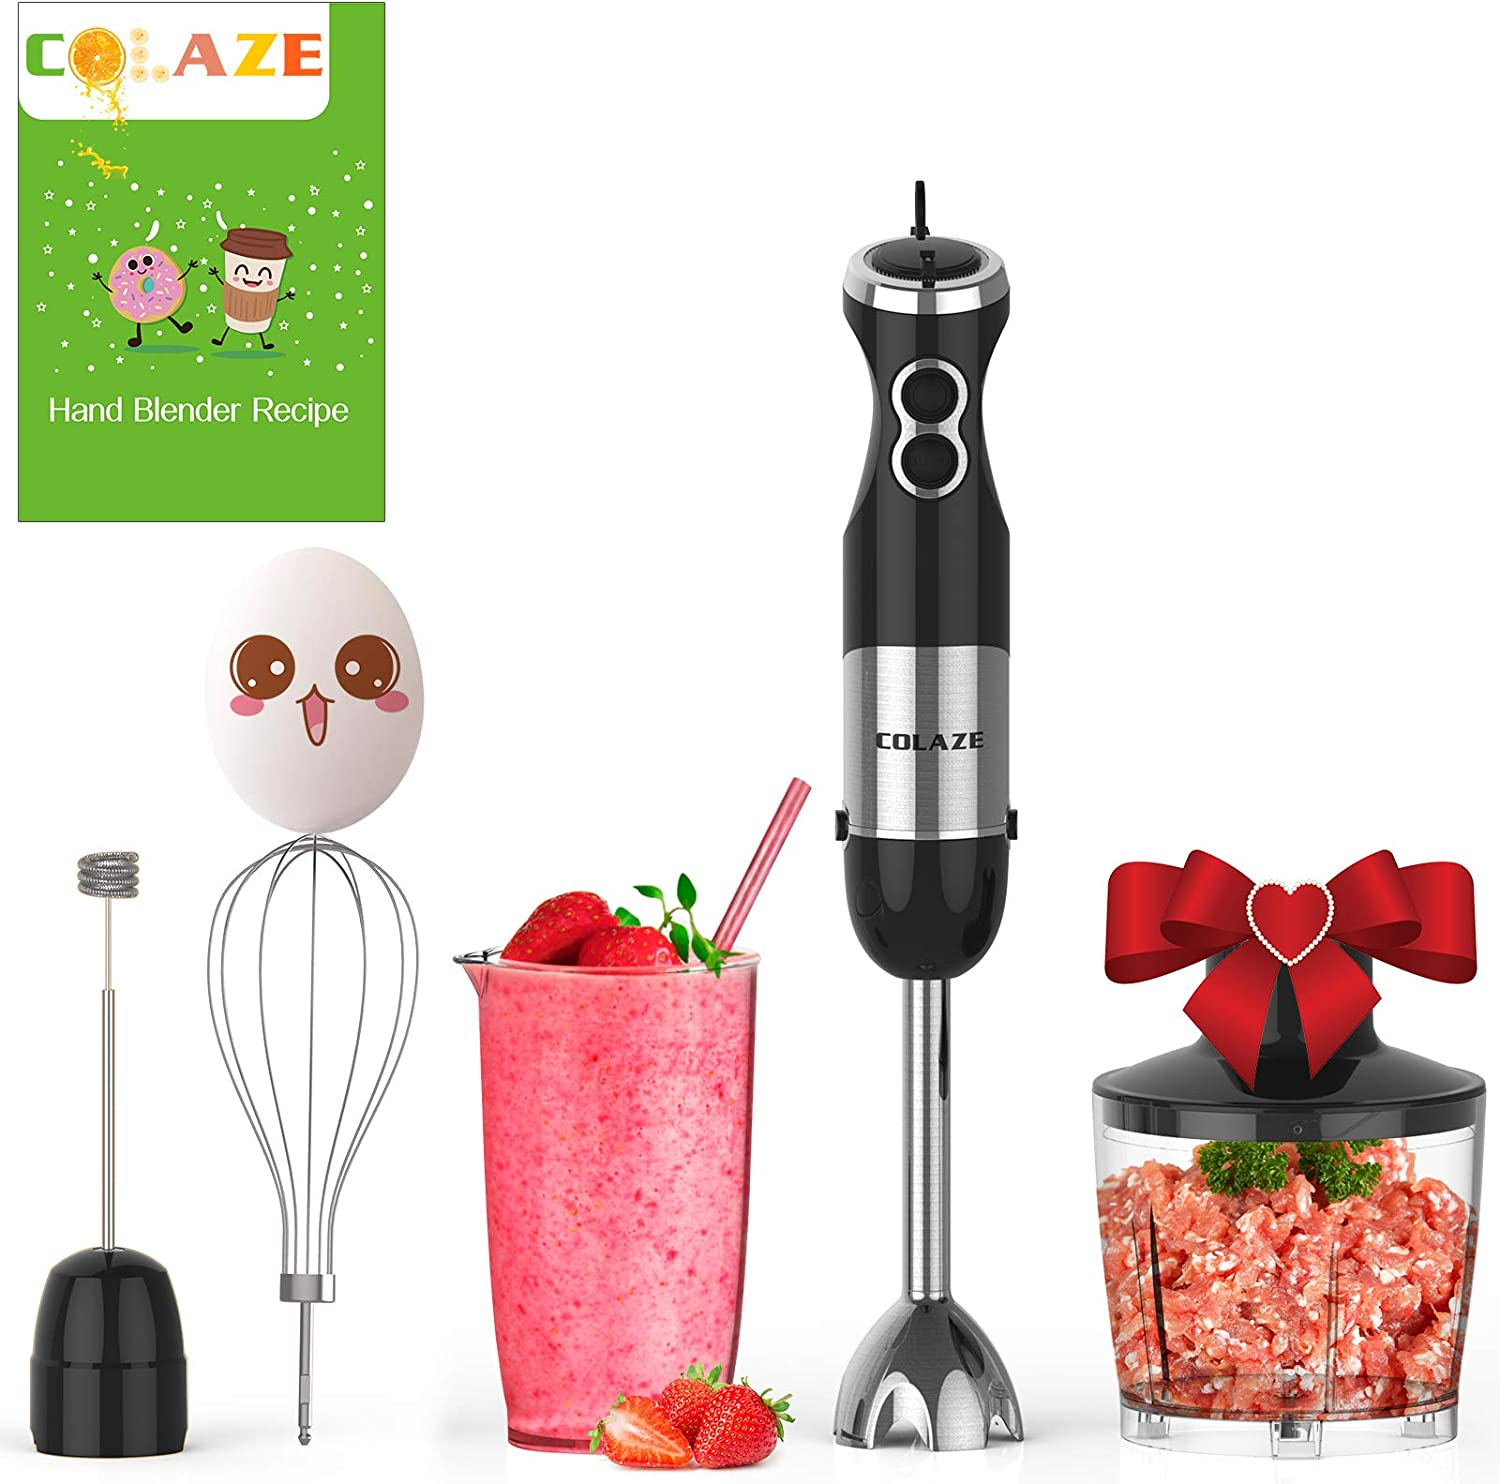 Immersion Hand Blender, COLAZE【5-in-1】800W Powerful 12 Speed Control Multifunctional Electric Handheld Stick Blender with Stainless Steel Blades, 500ml Chopper, 600ml Container, Egg Whisk, Milk Frother Attachments for Sauces, Smoothies, Soups and Baby Food, BPA-Free